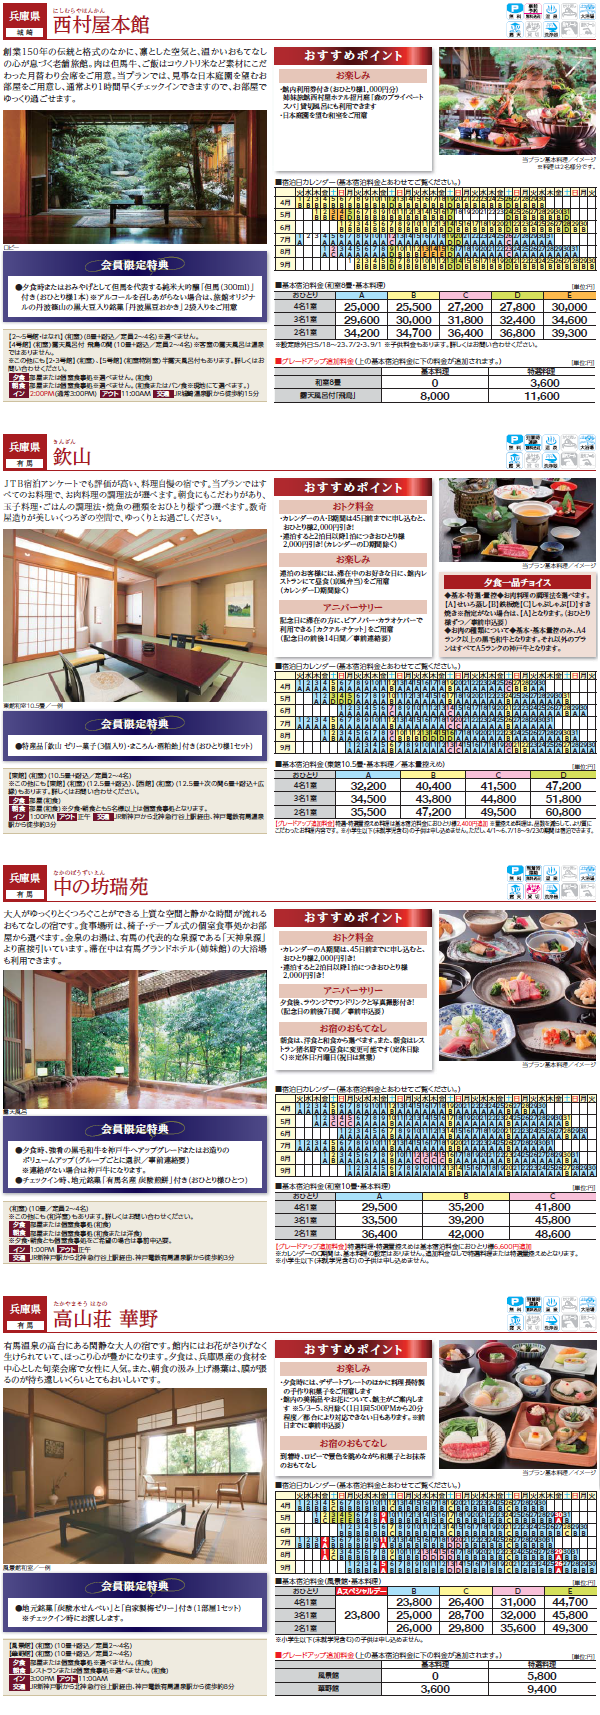 stay_plan_ryokan_1403_19